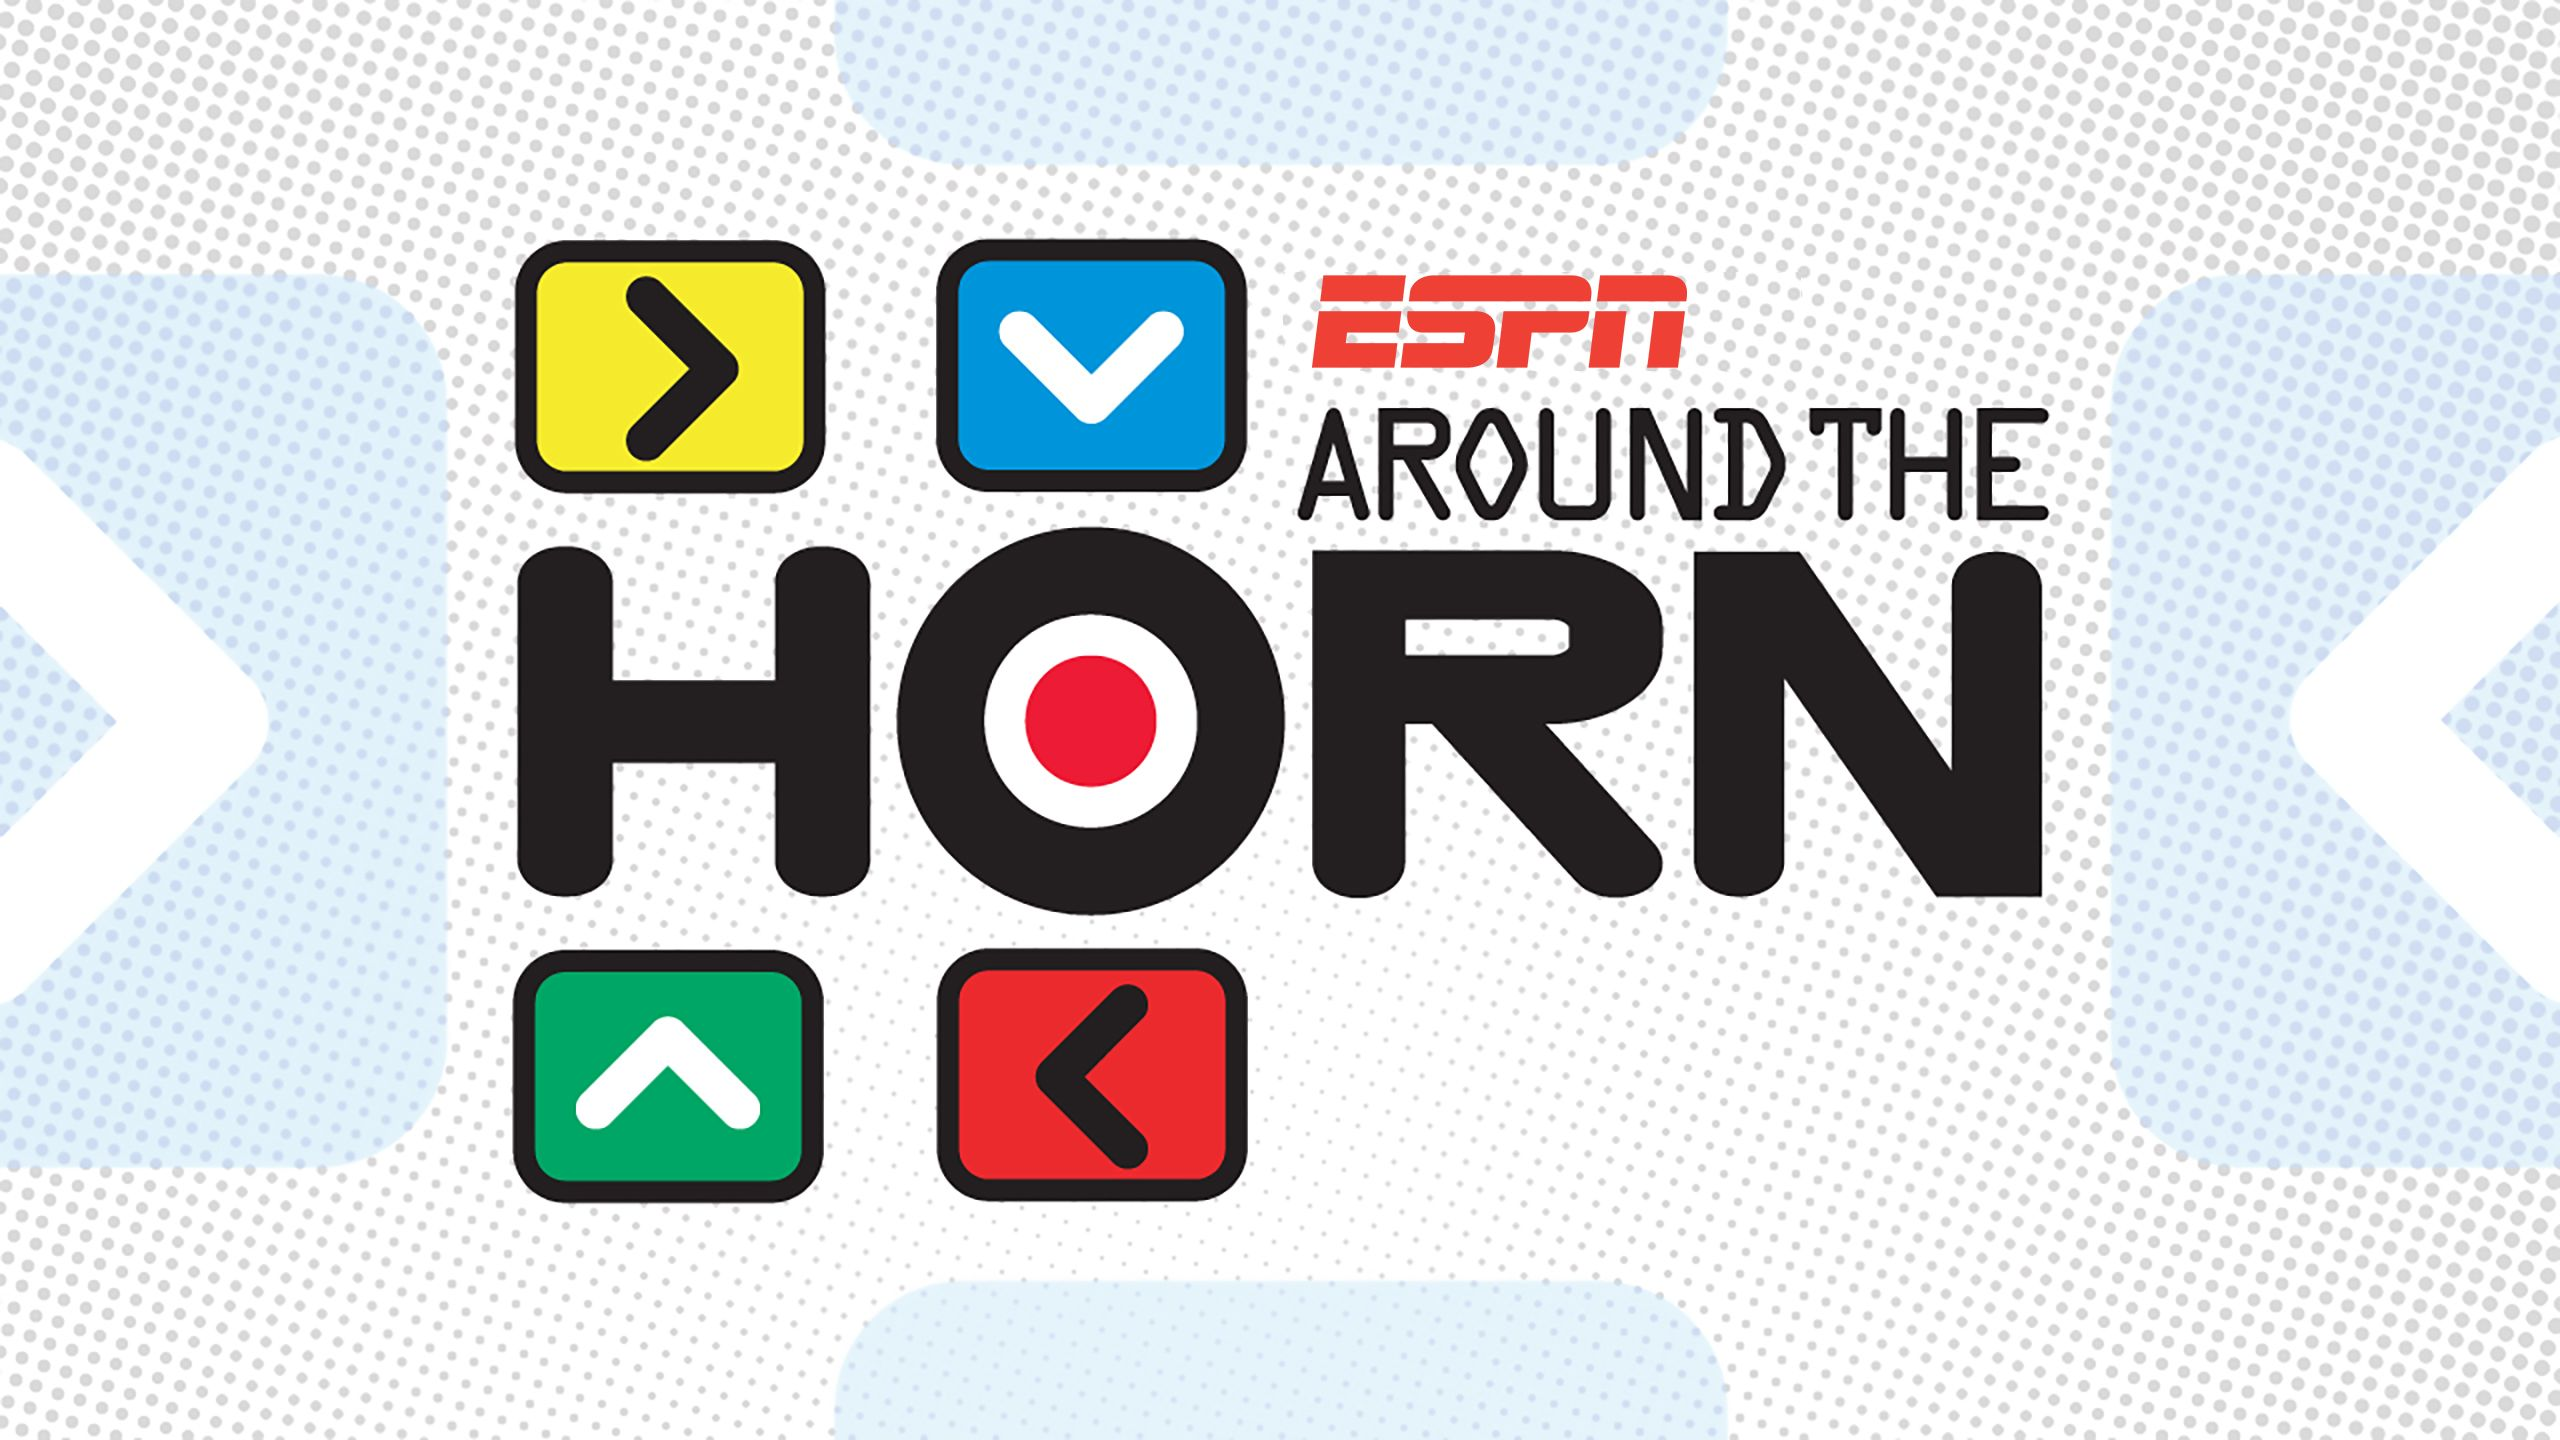 Mon, 6/18 - Around The Horn